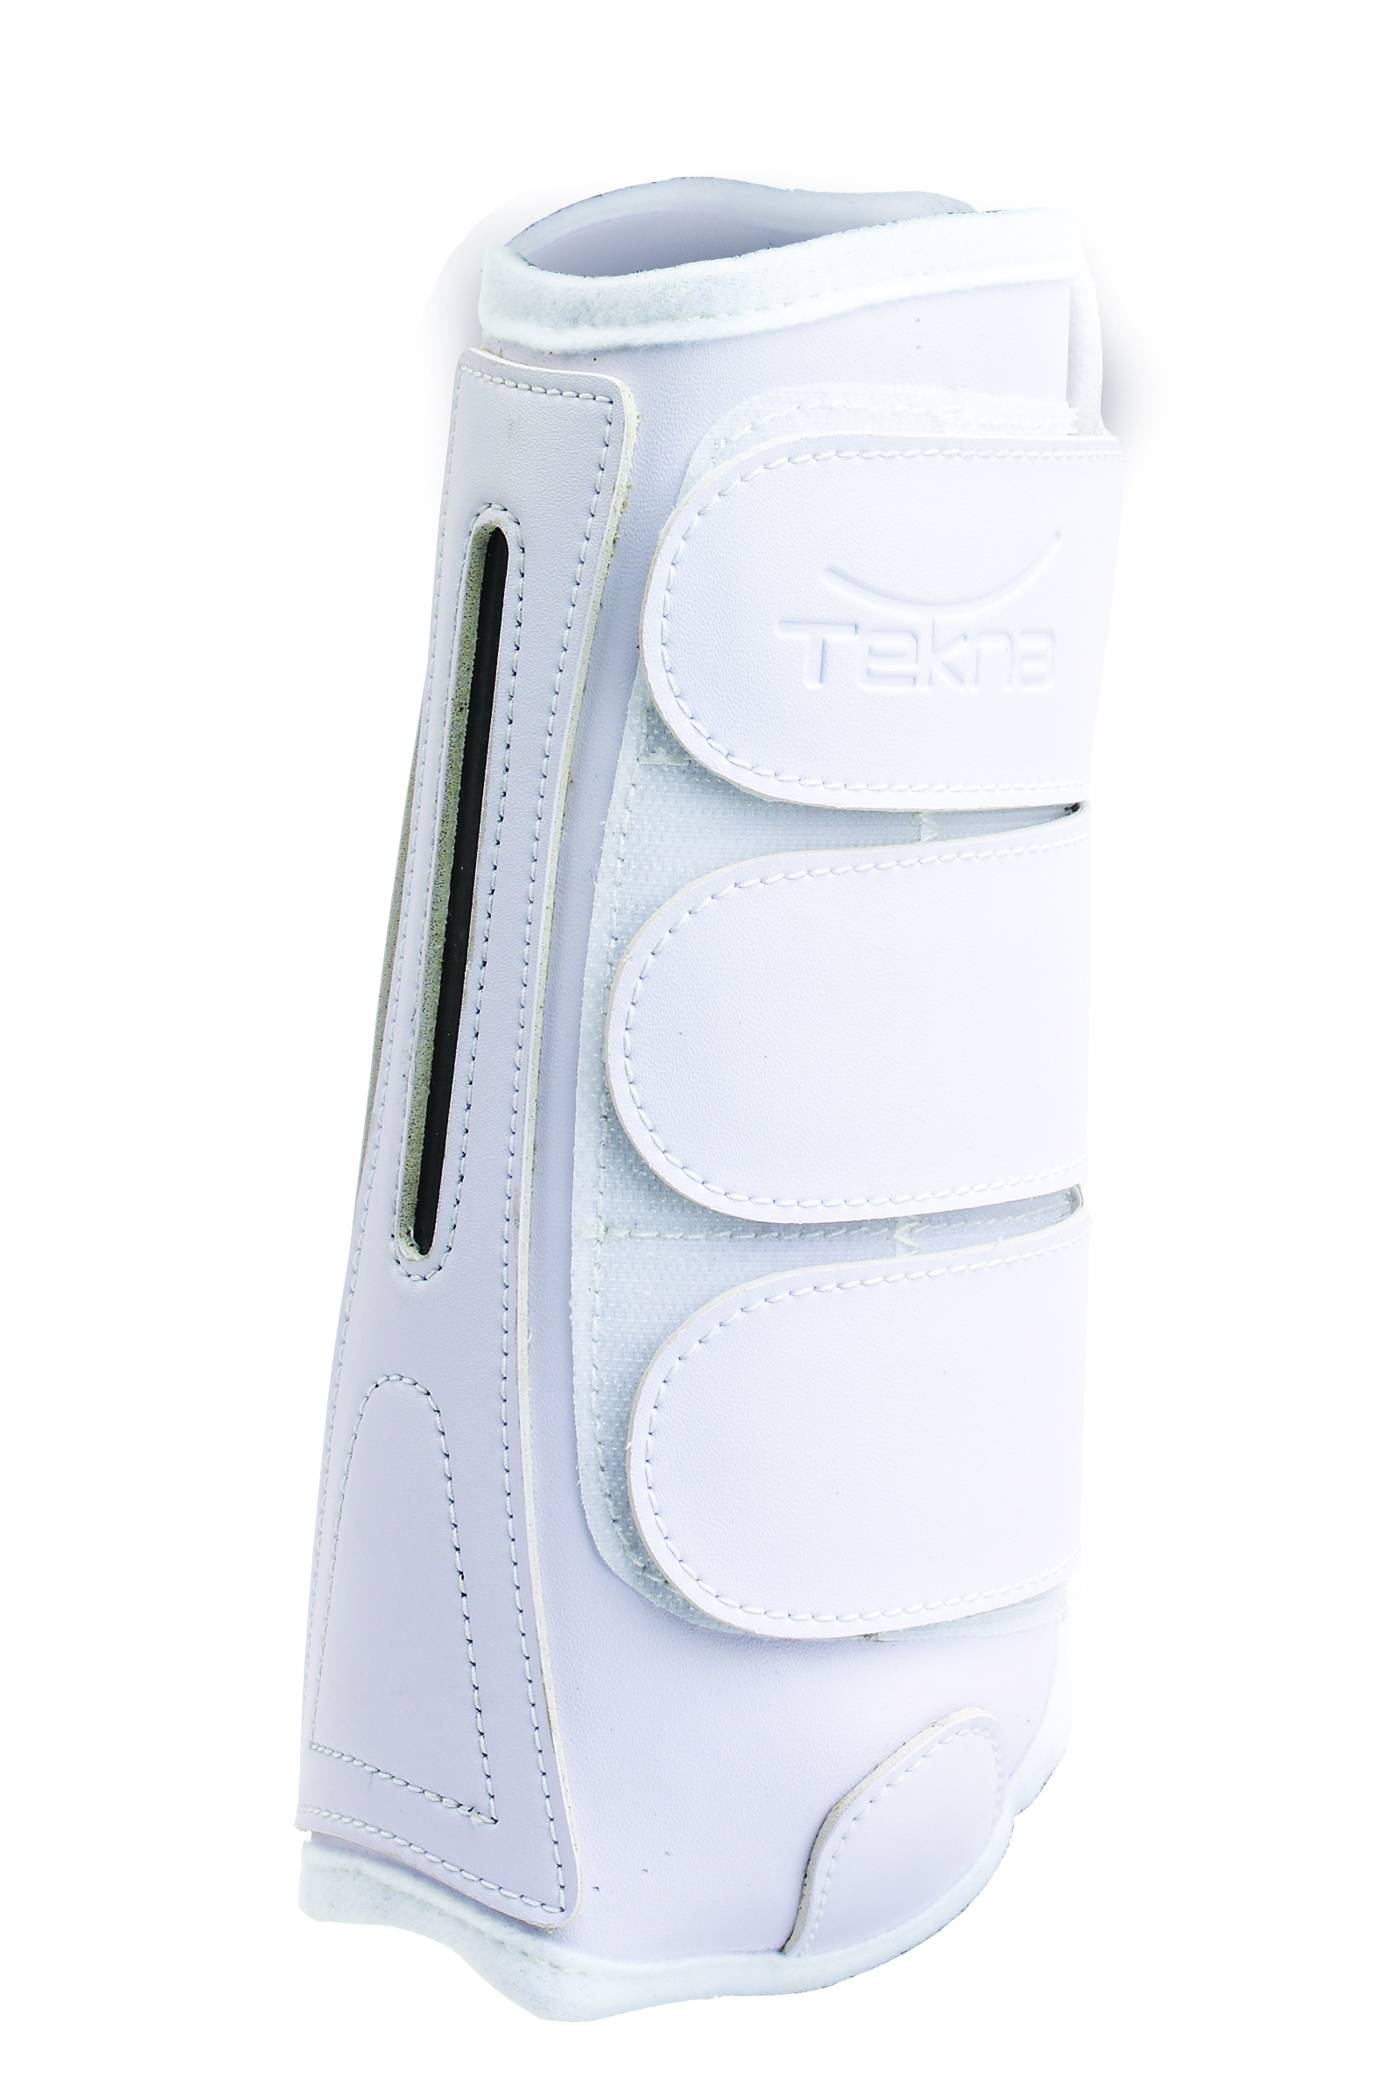 Tekna Dressage Front Boots